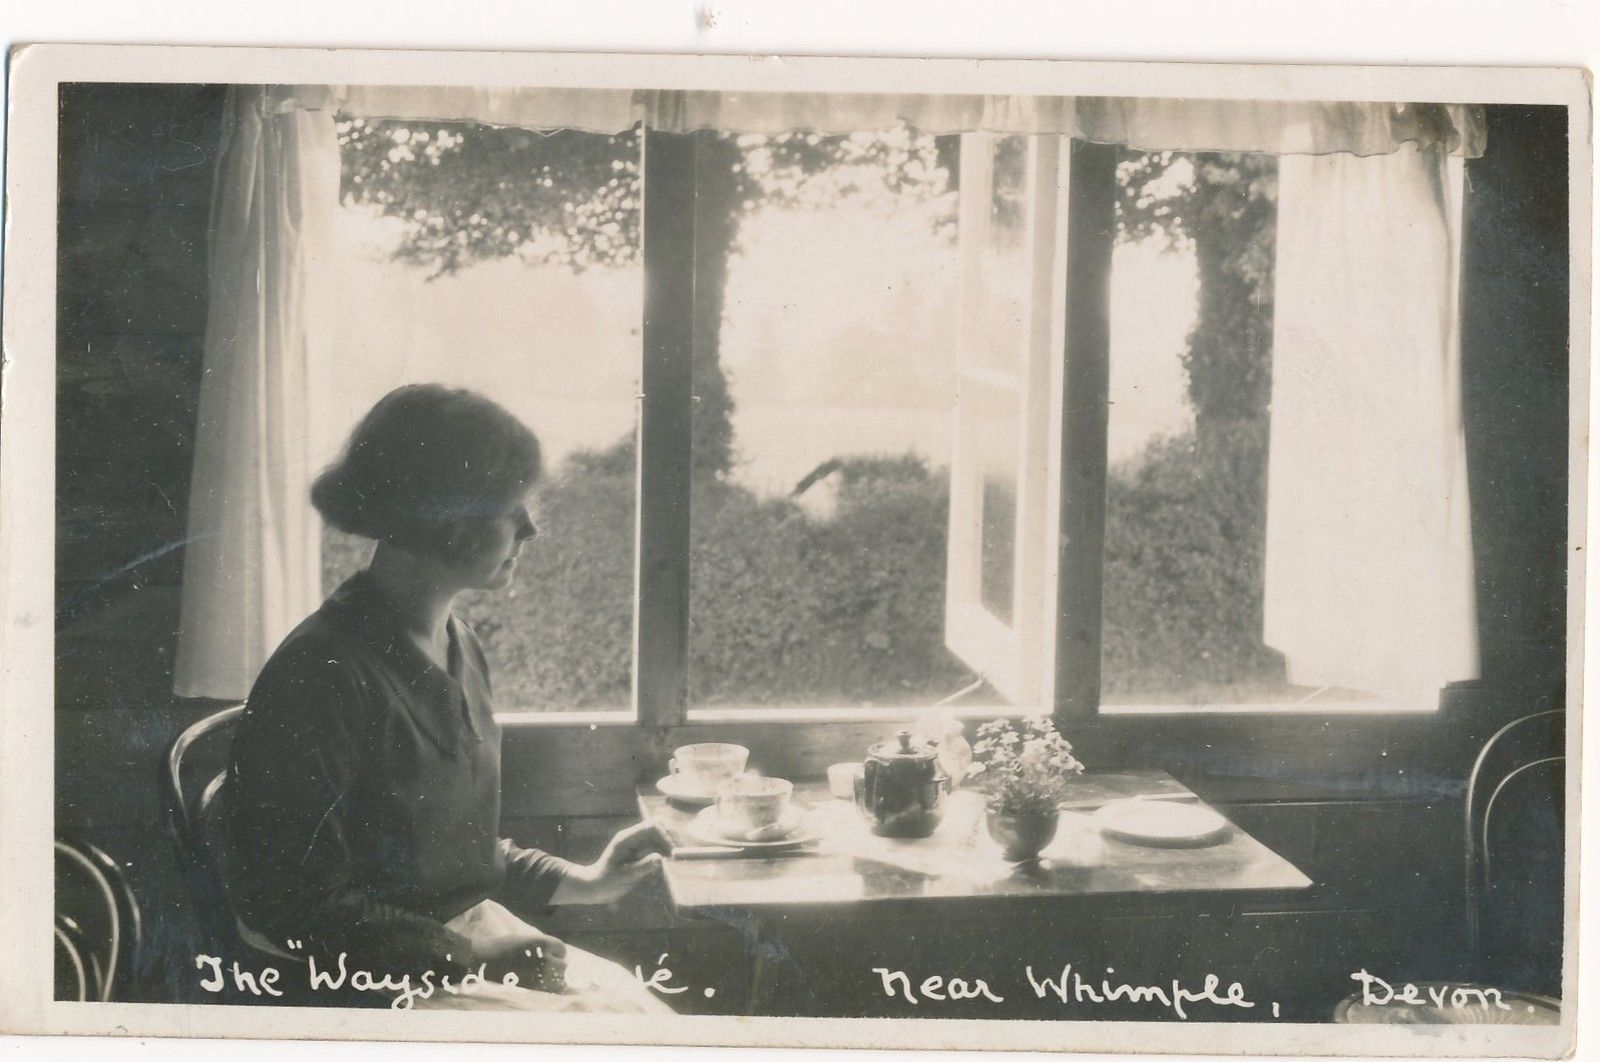 The Wayside cafe, WHIMPLE, DEVON. Some of my ancestors were from Whimple - if you're researching the Sanders or Willsman families, do get in touch! esjones <at> btopenworld.com